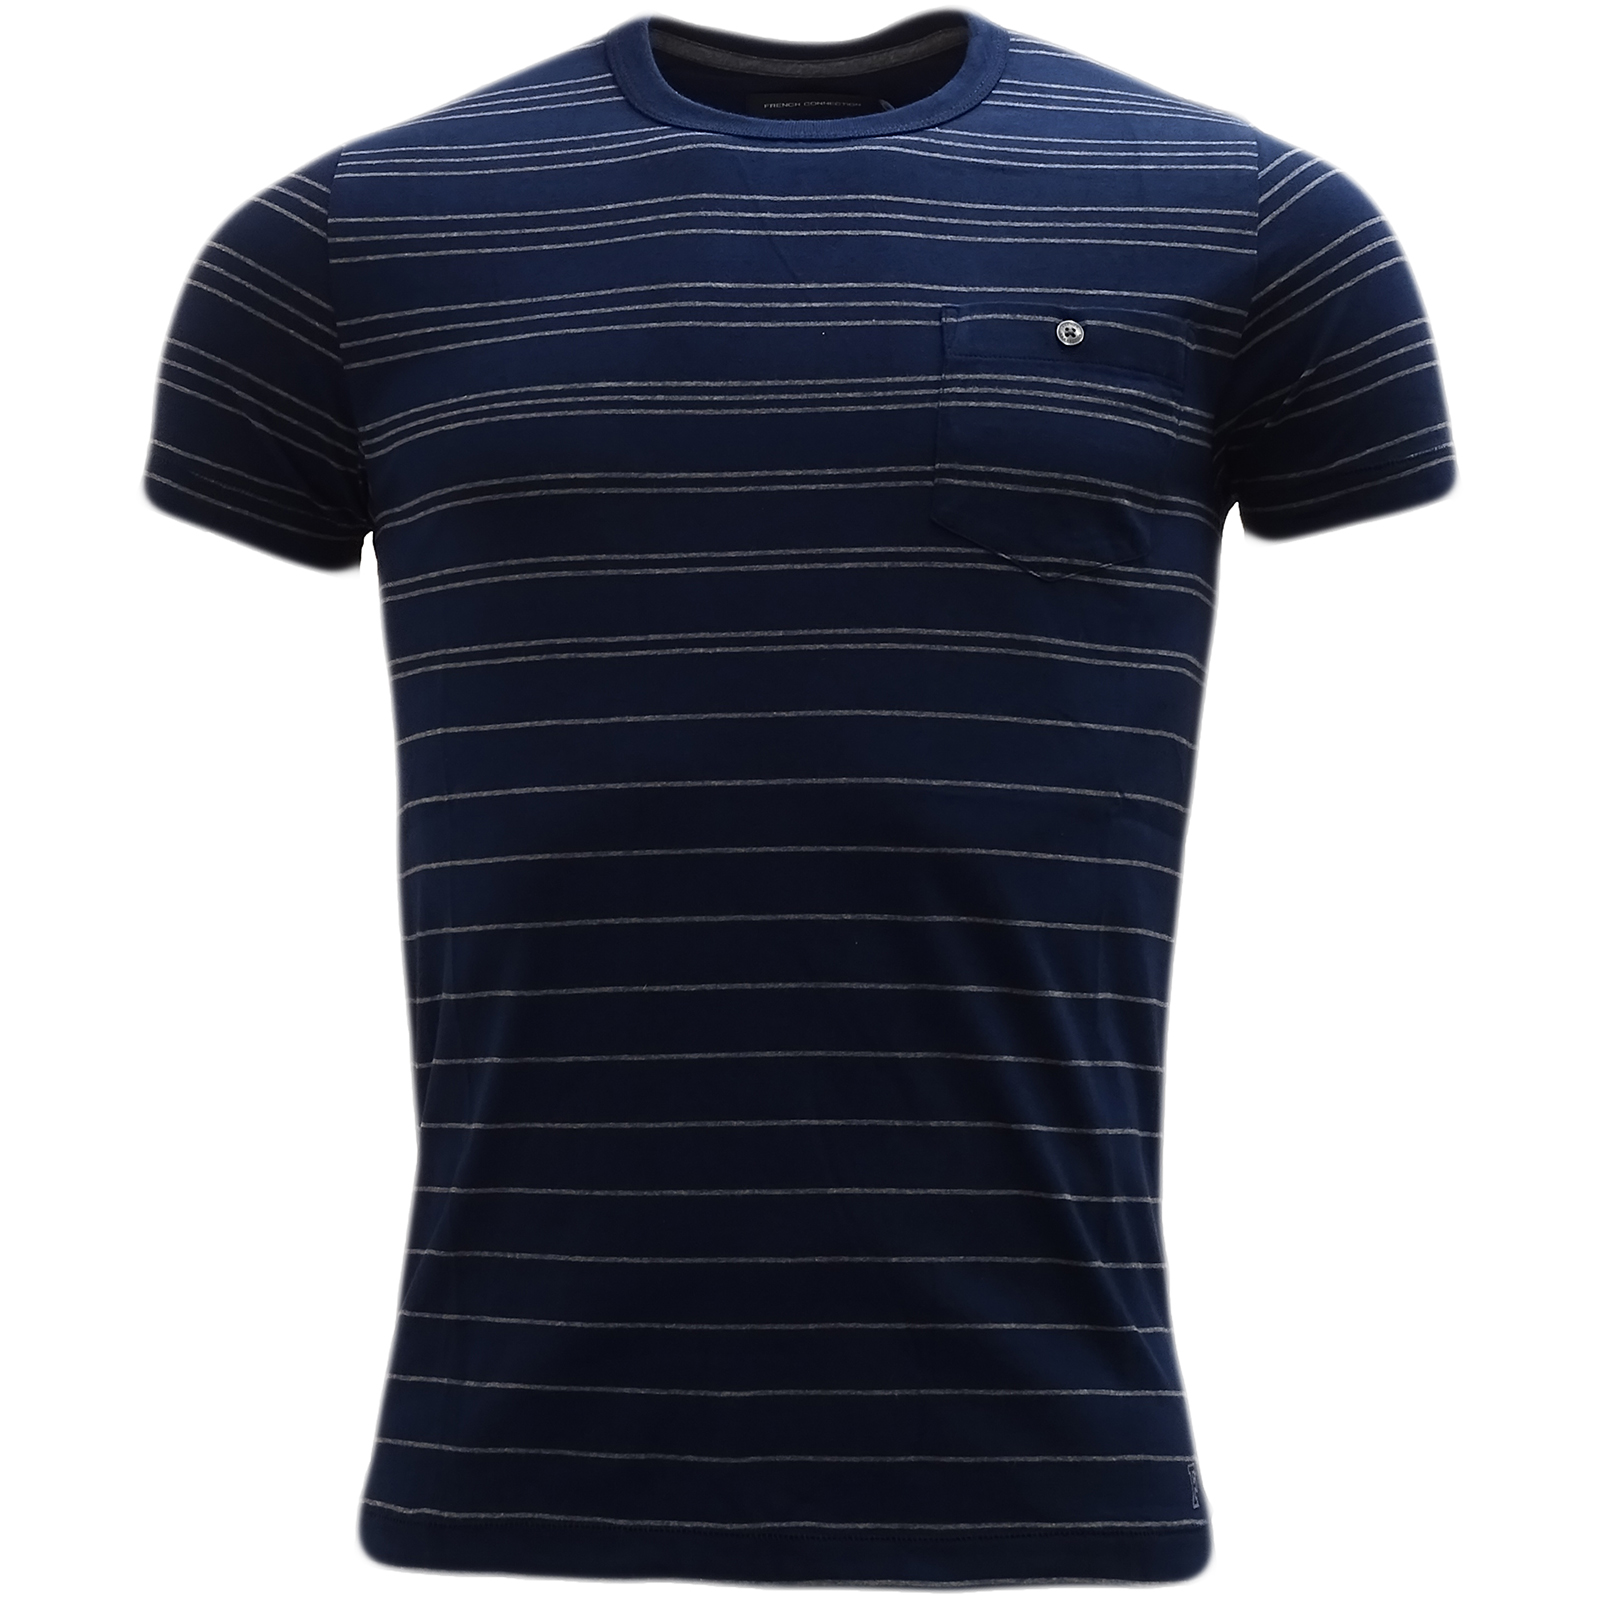 French Connection Navy Stripe T-Shirt 56Szy -